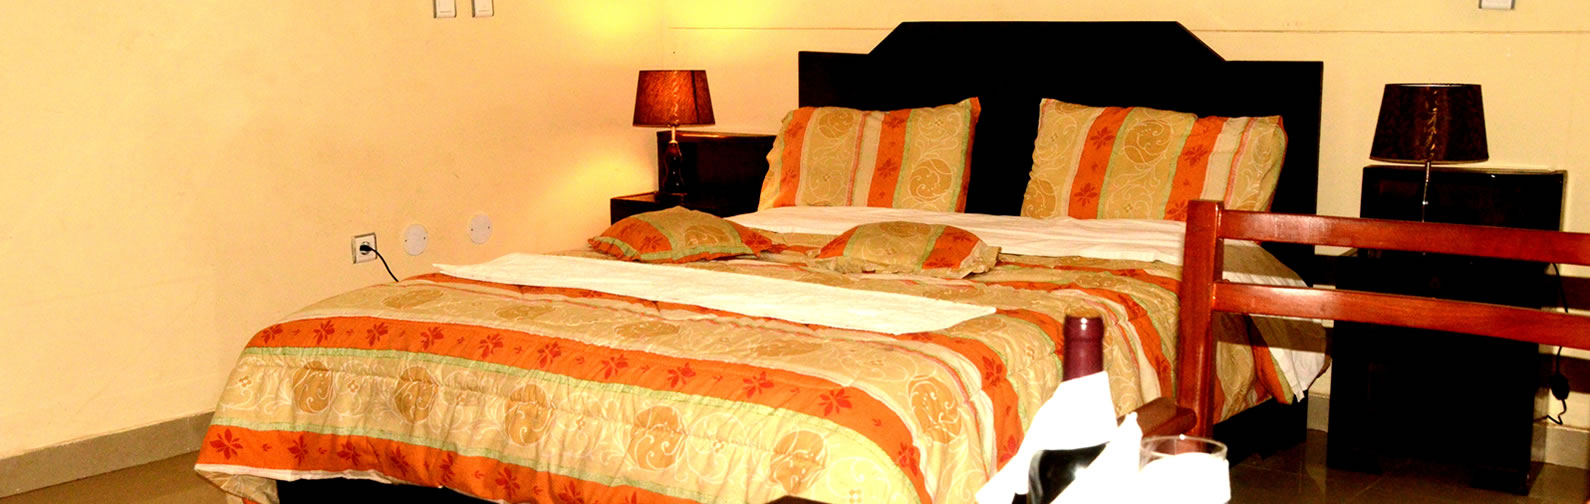 NGG Hotel King Size Bed Room